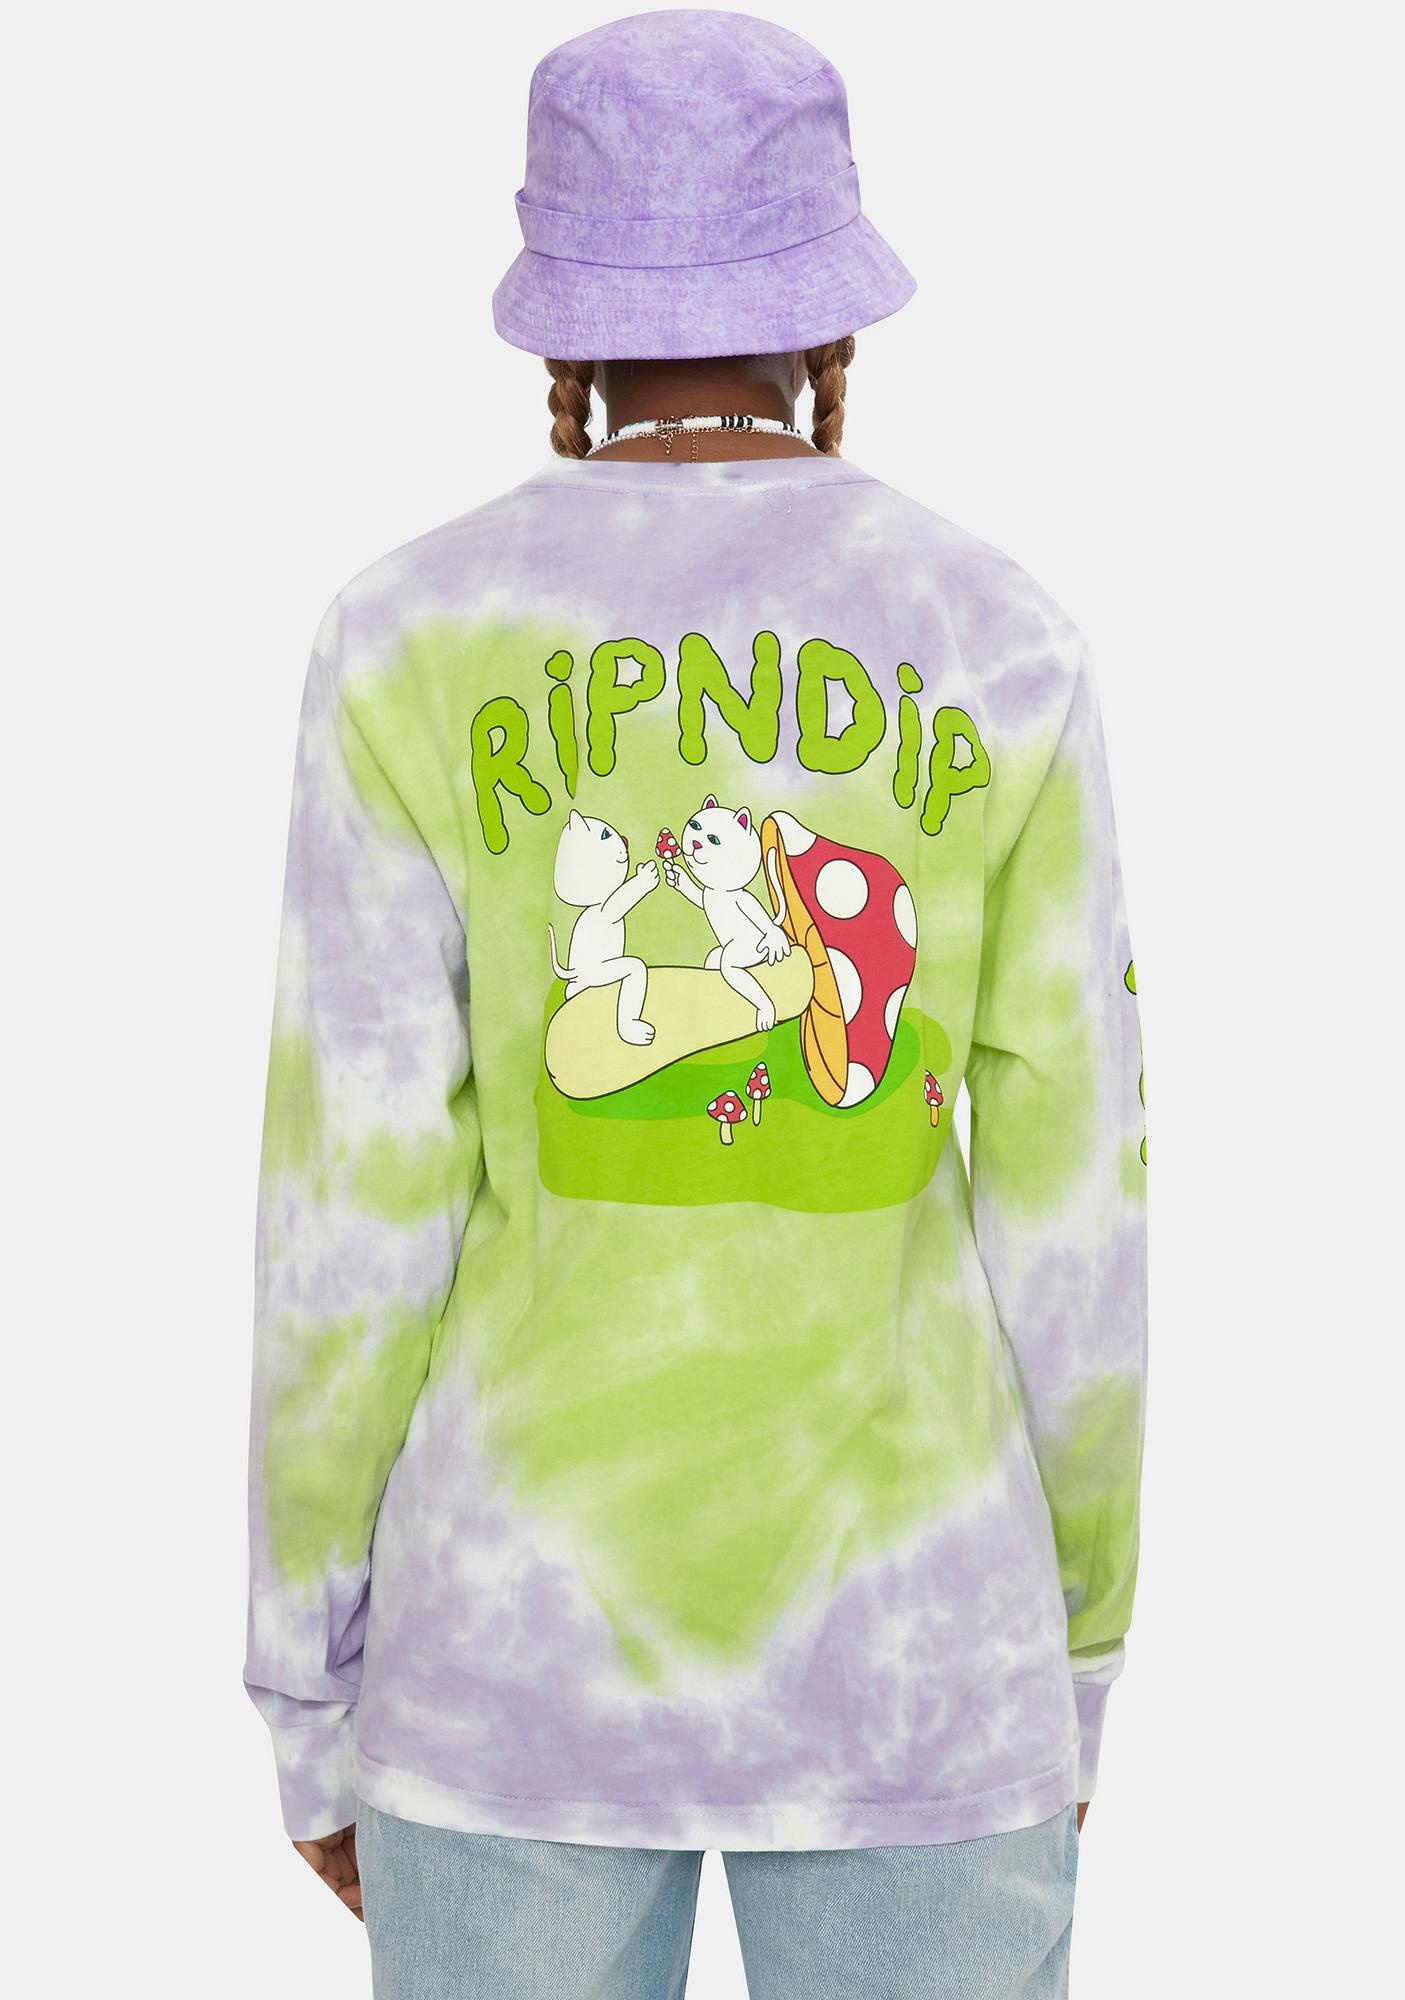 RIPNDIP Sharing Is Caring Graphic Tee